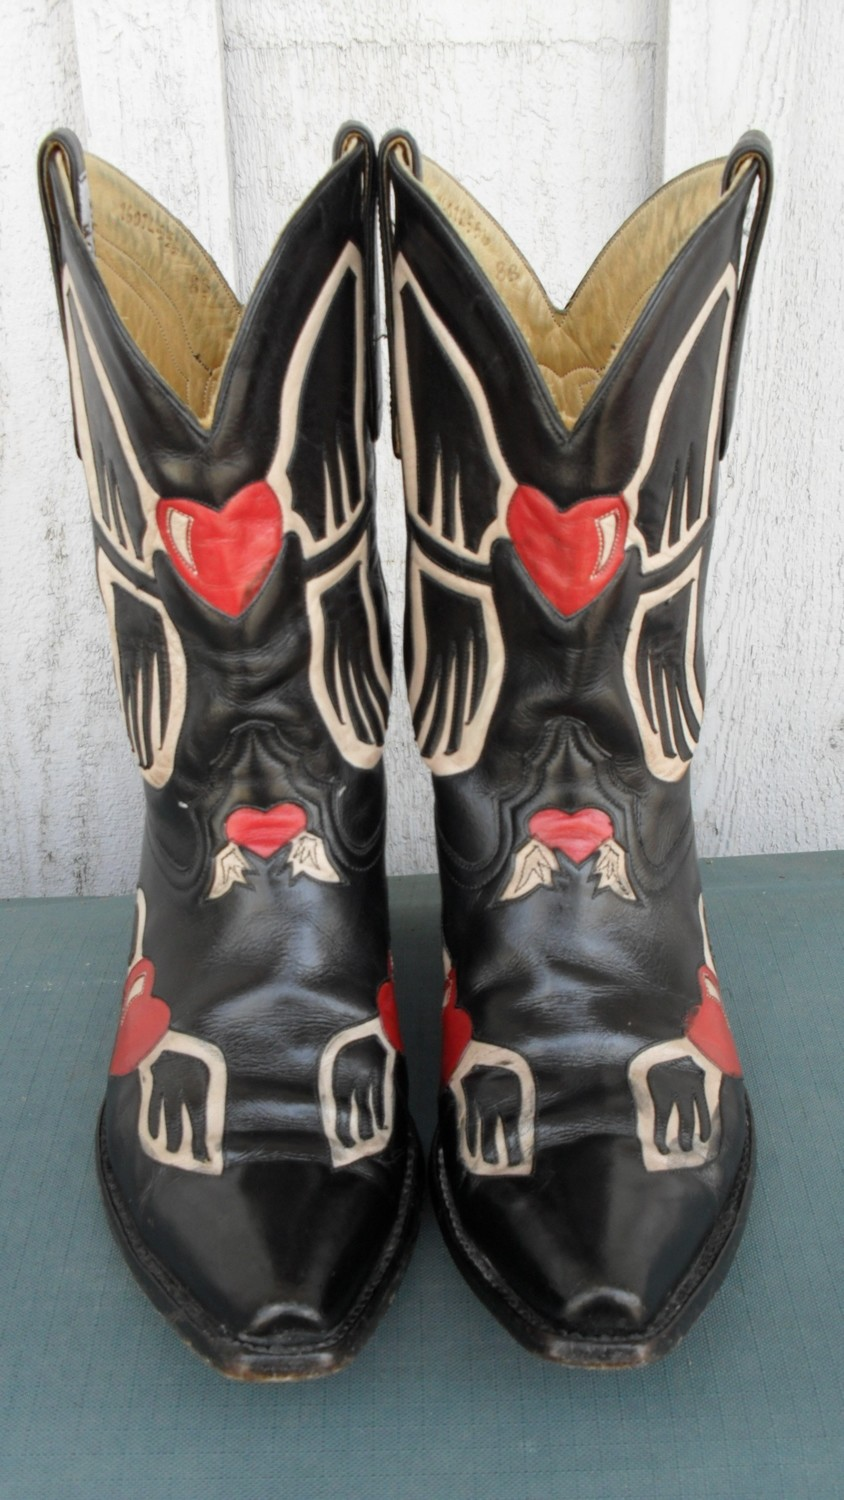 Hard to find Corazon Tony boots by Liberty Boot Company!